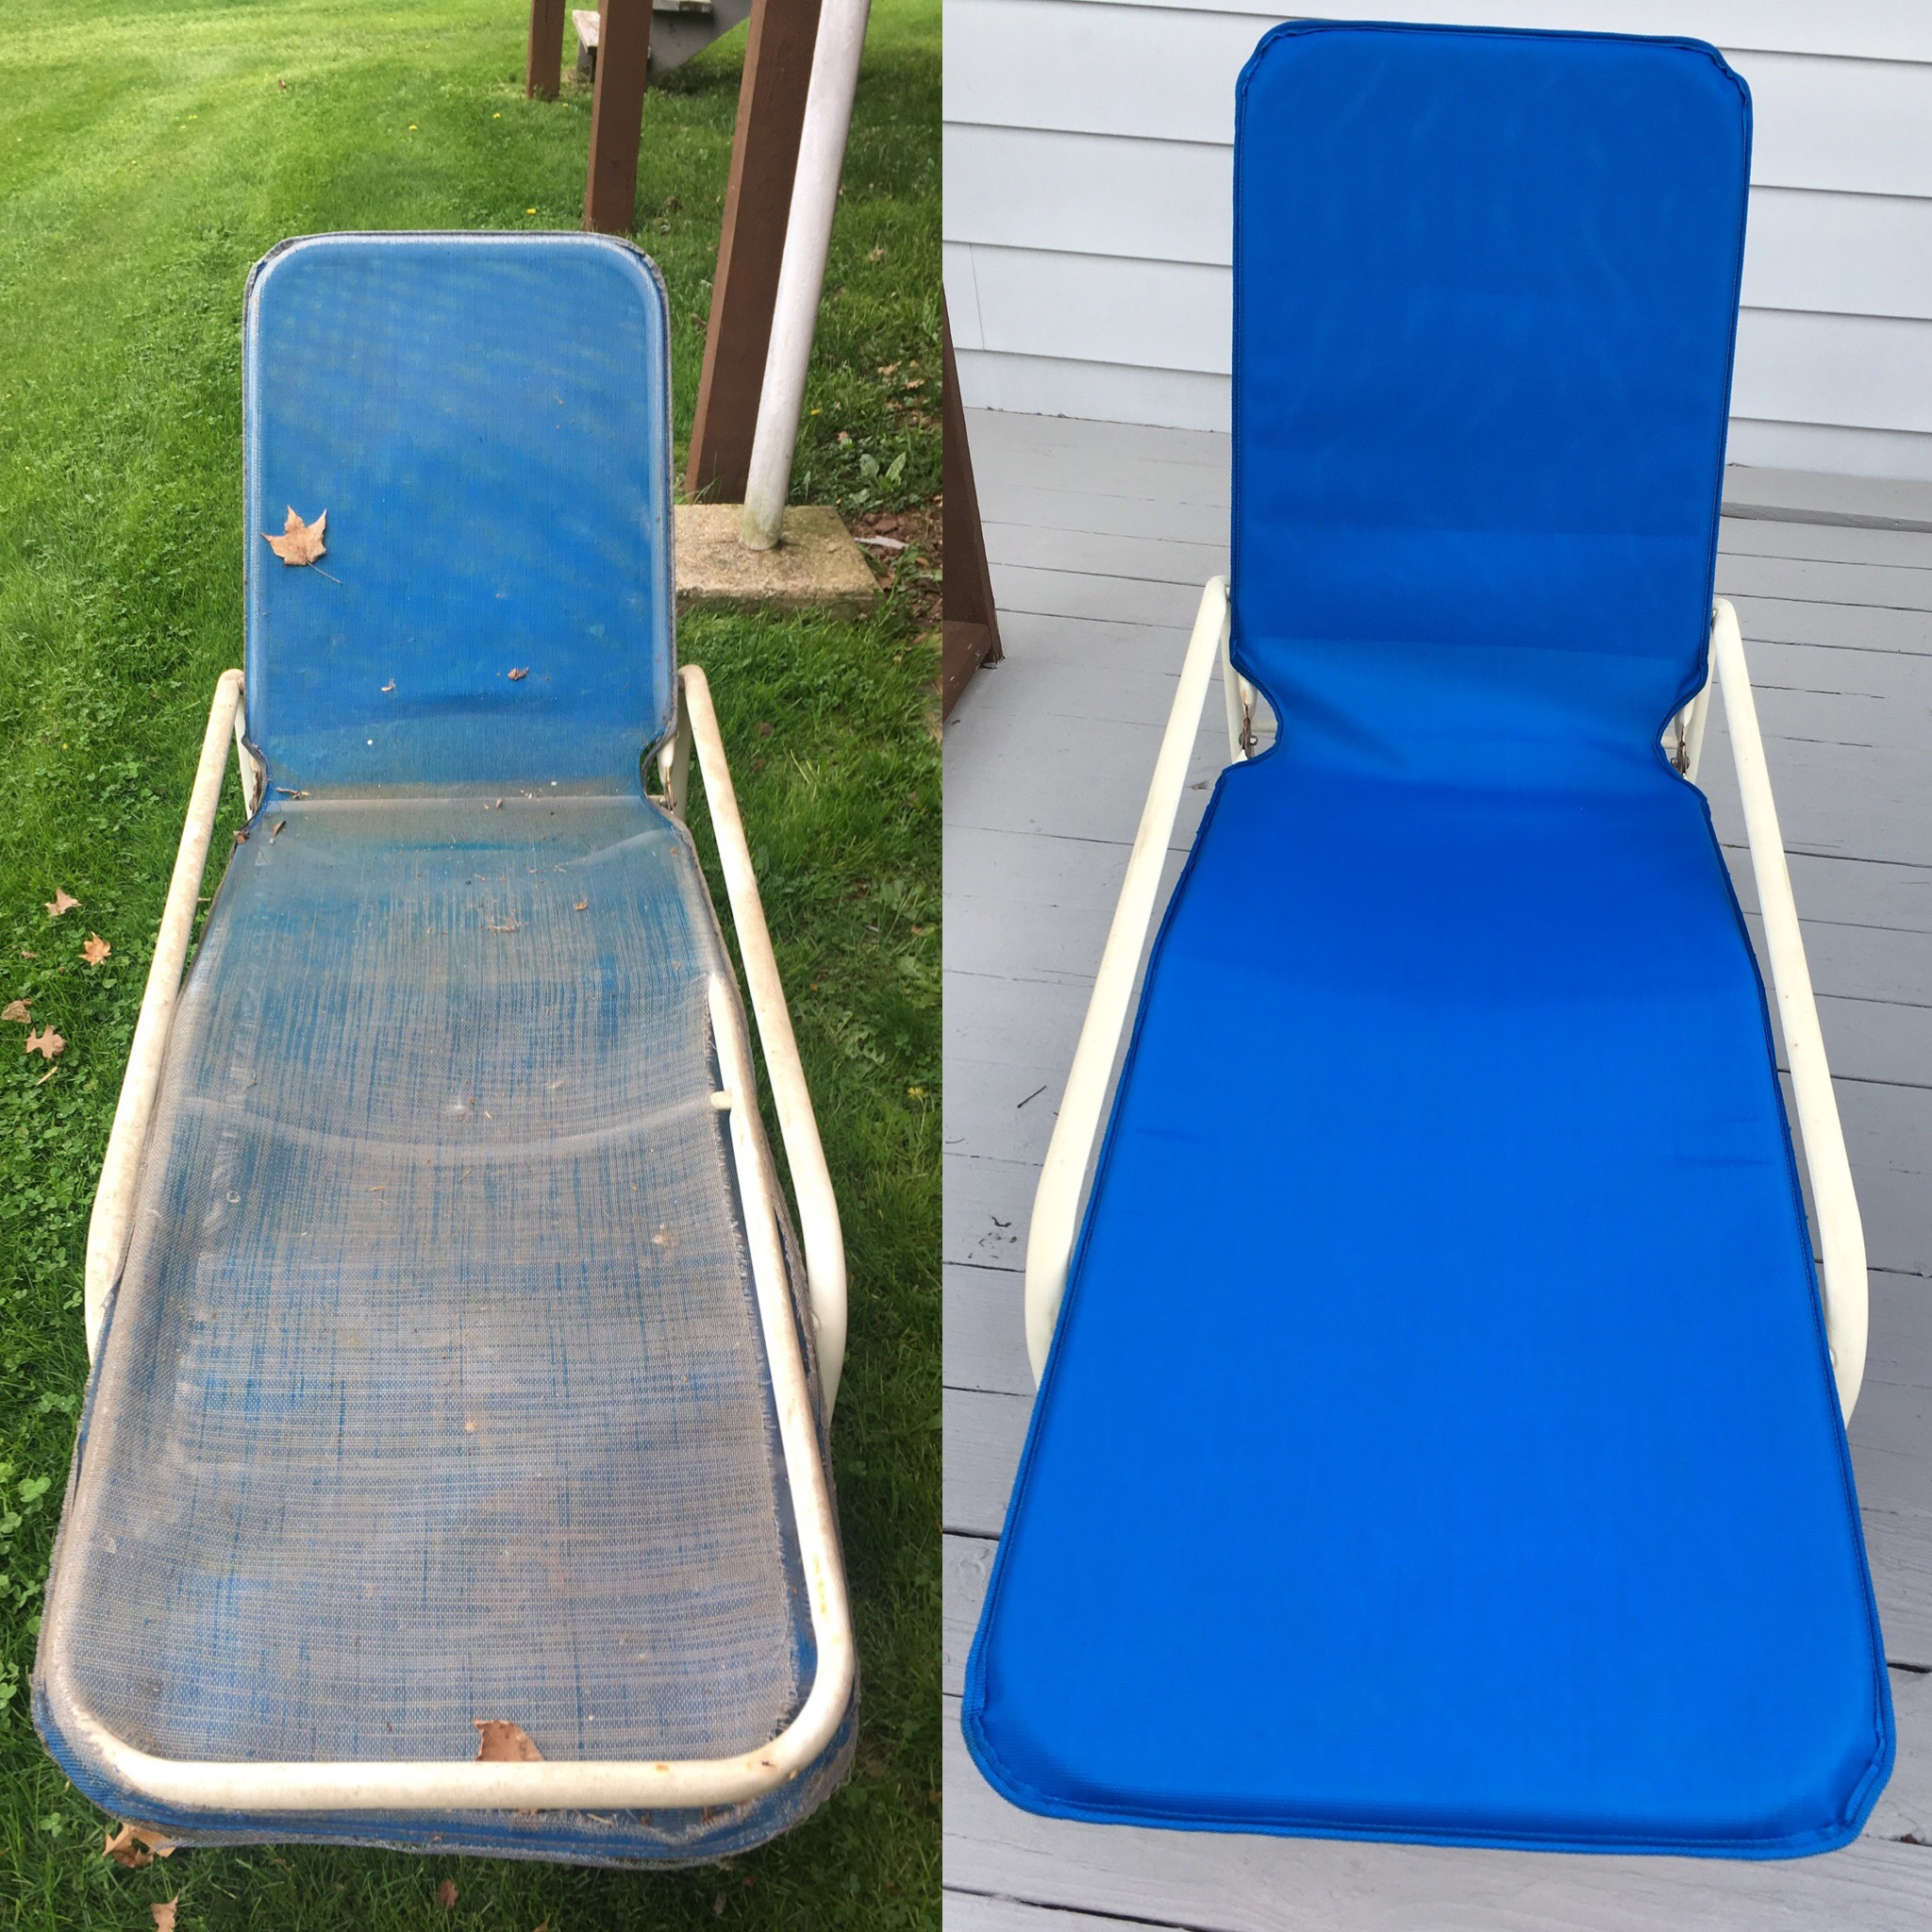 Before / After BG 5410 / Royal Blue